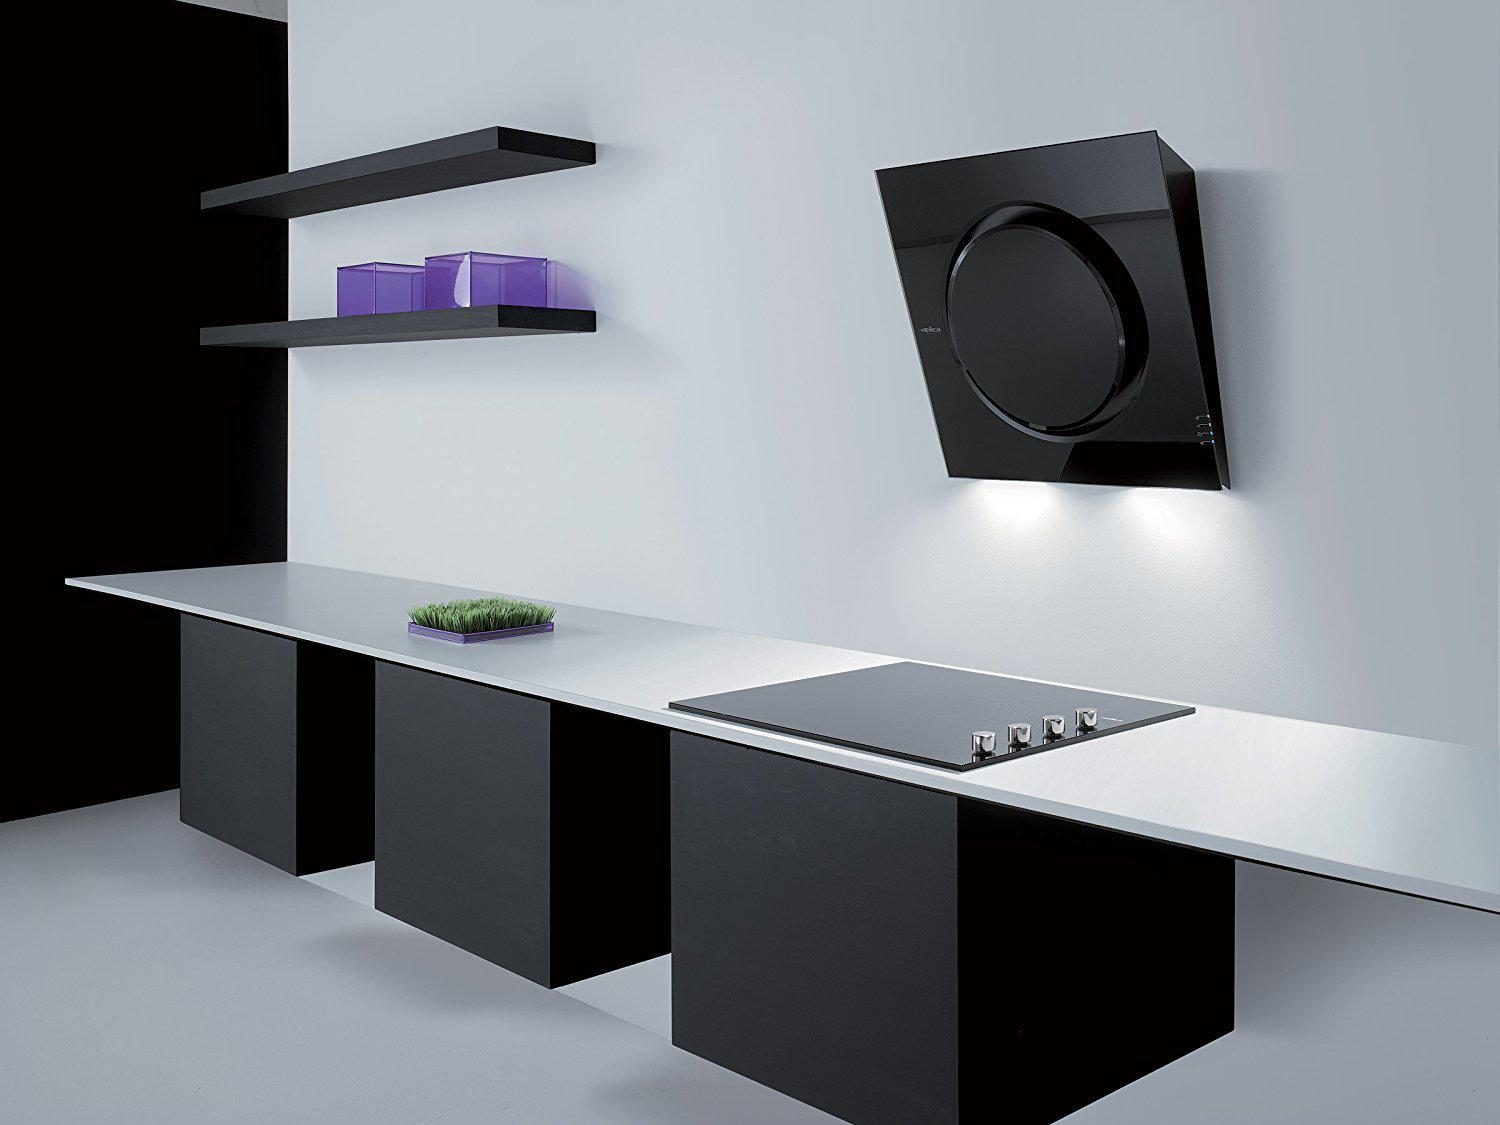 Image of: Modern Range Hood Design